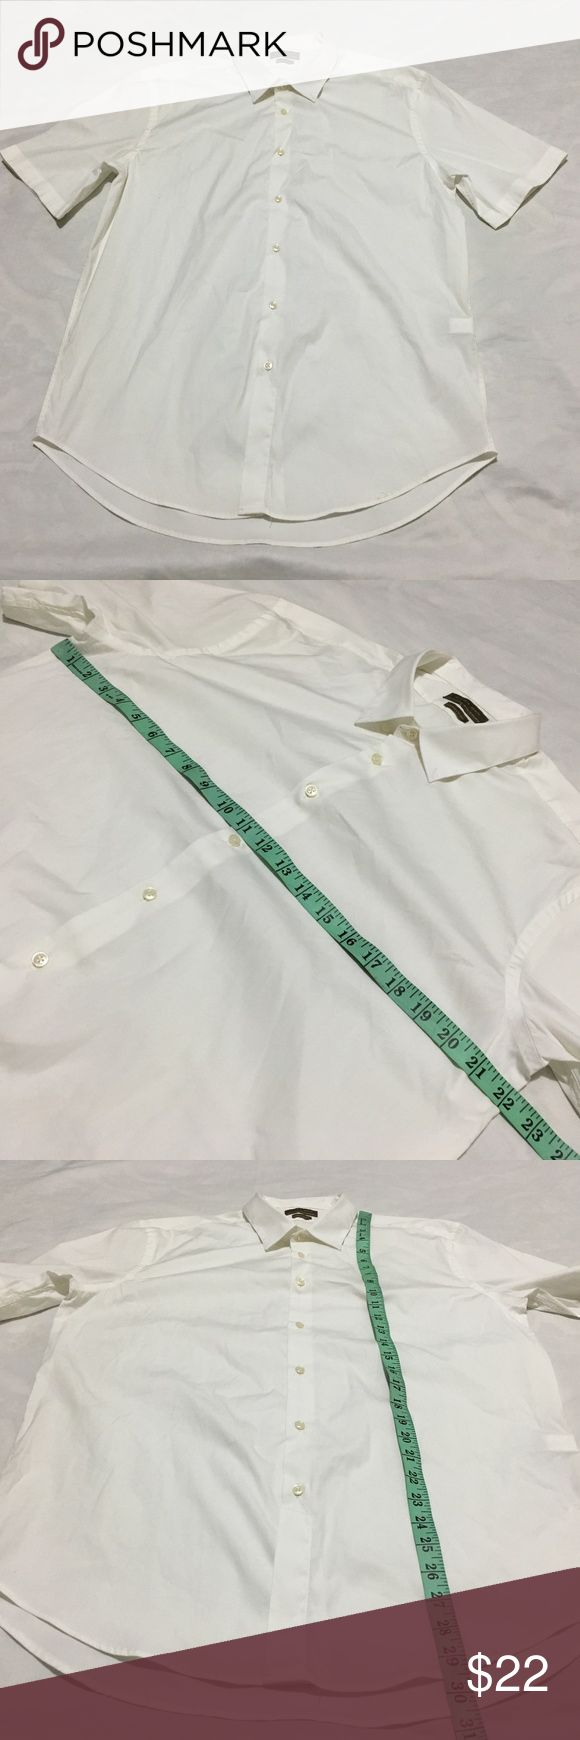 "ZARA MAN short sleeve men shirt SUPPER SLIM FIT These are *Gently Used*Excellent condition .Please see photos for color, style and measurements.  The tag does have a ""XXL""   BUT MEASURES MATCH WITH  Large size. Please view  pictures to view   the measures. ZARA Shirts Dress Shirts"